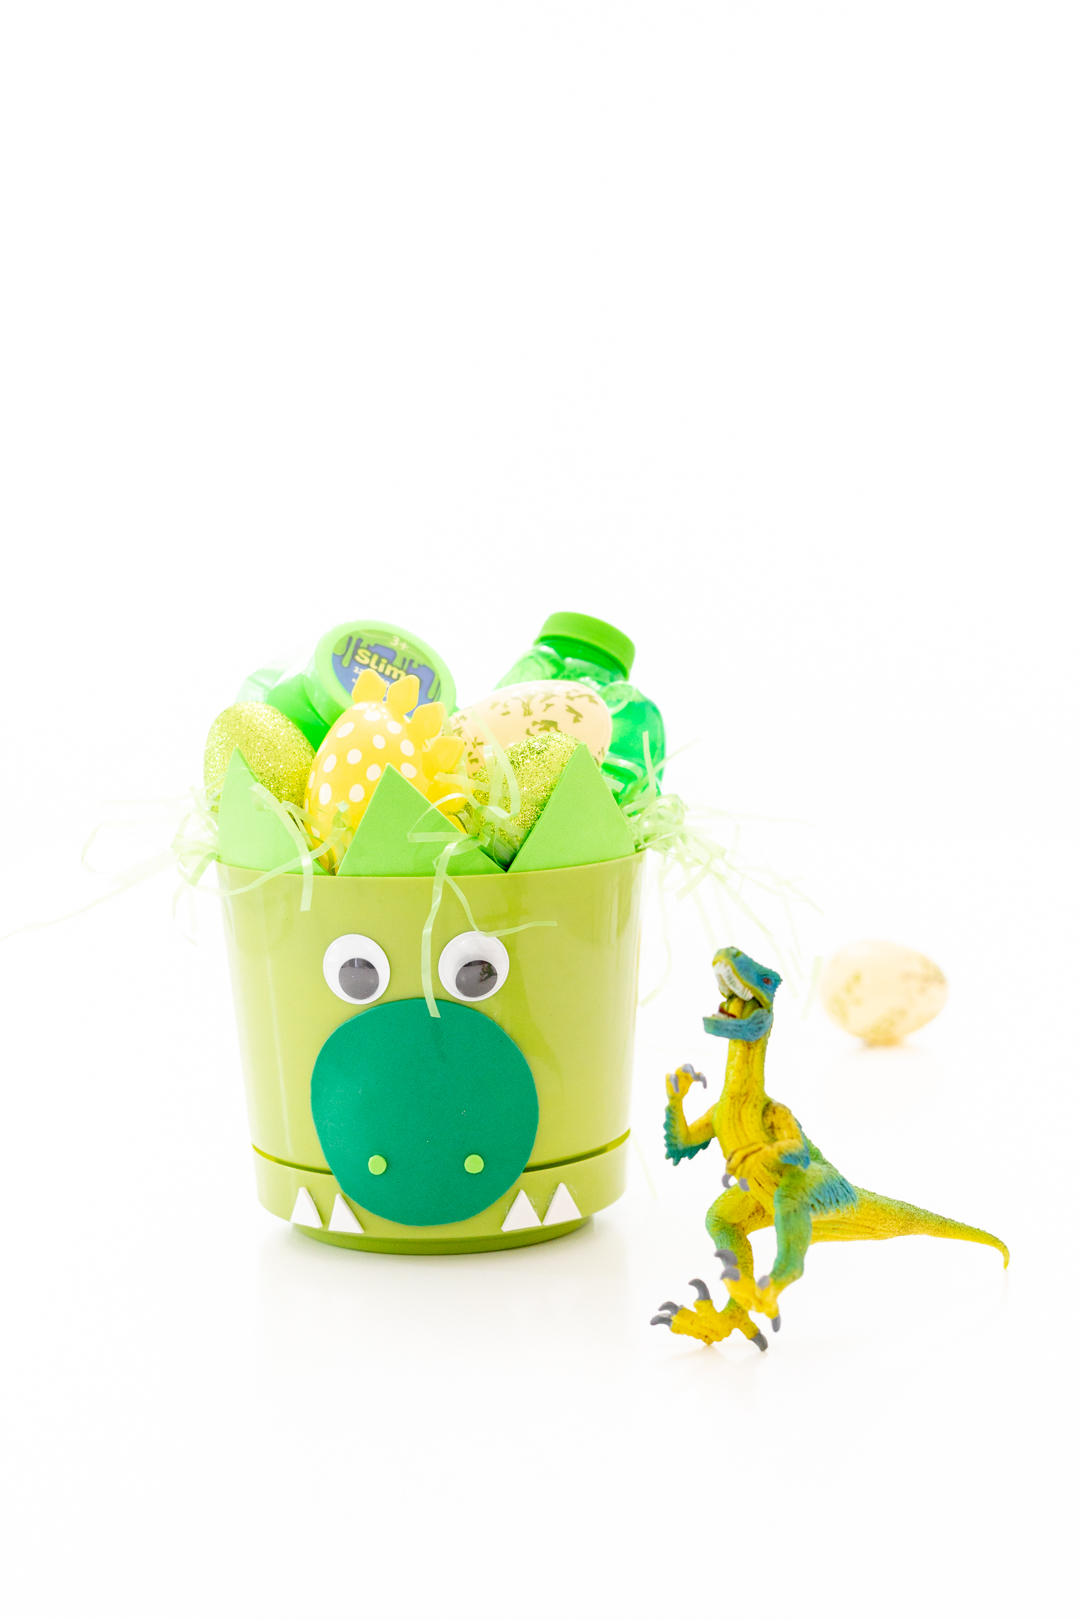 Dinosaur Easter Basket and Dino figure and fillers